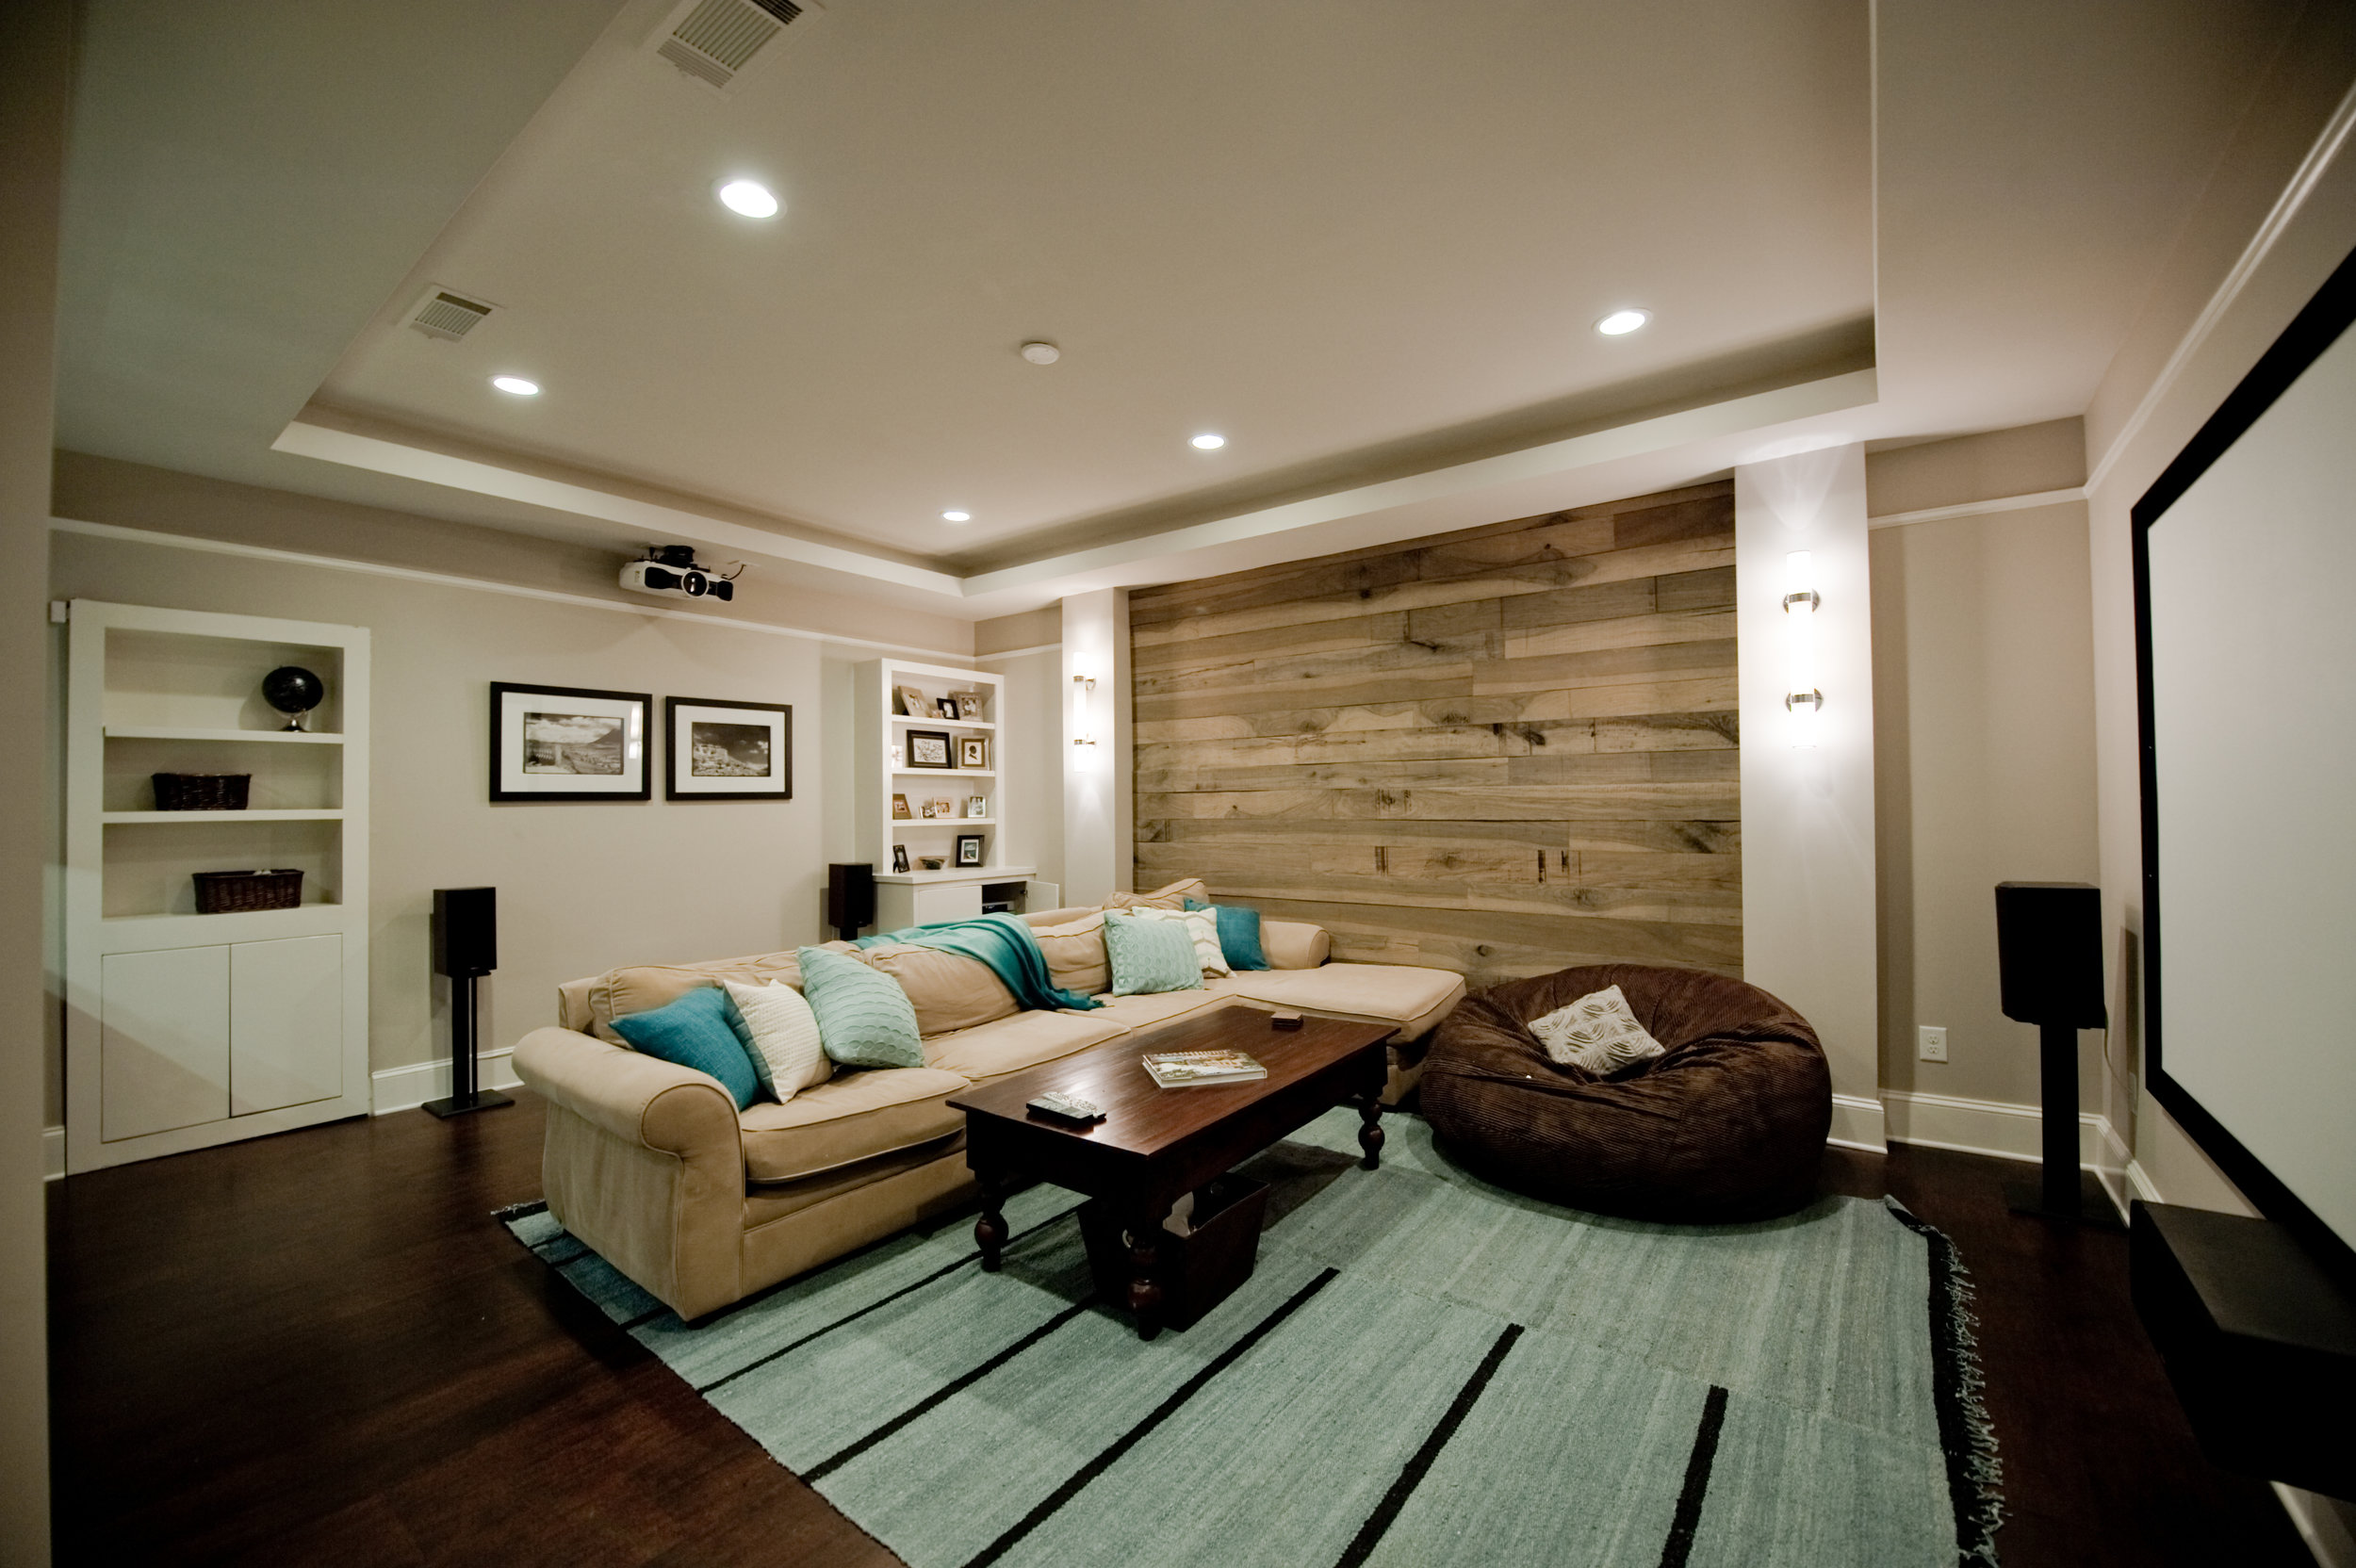 Heirloom Design Build Eutree Forest Free naturally weathered white oak wood paneling feature accent wall